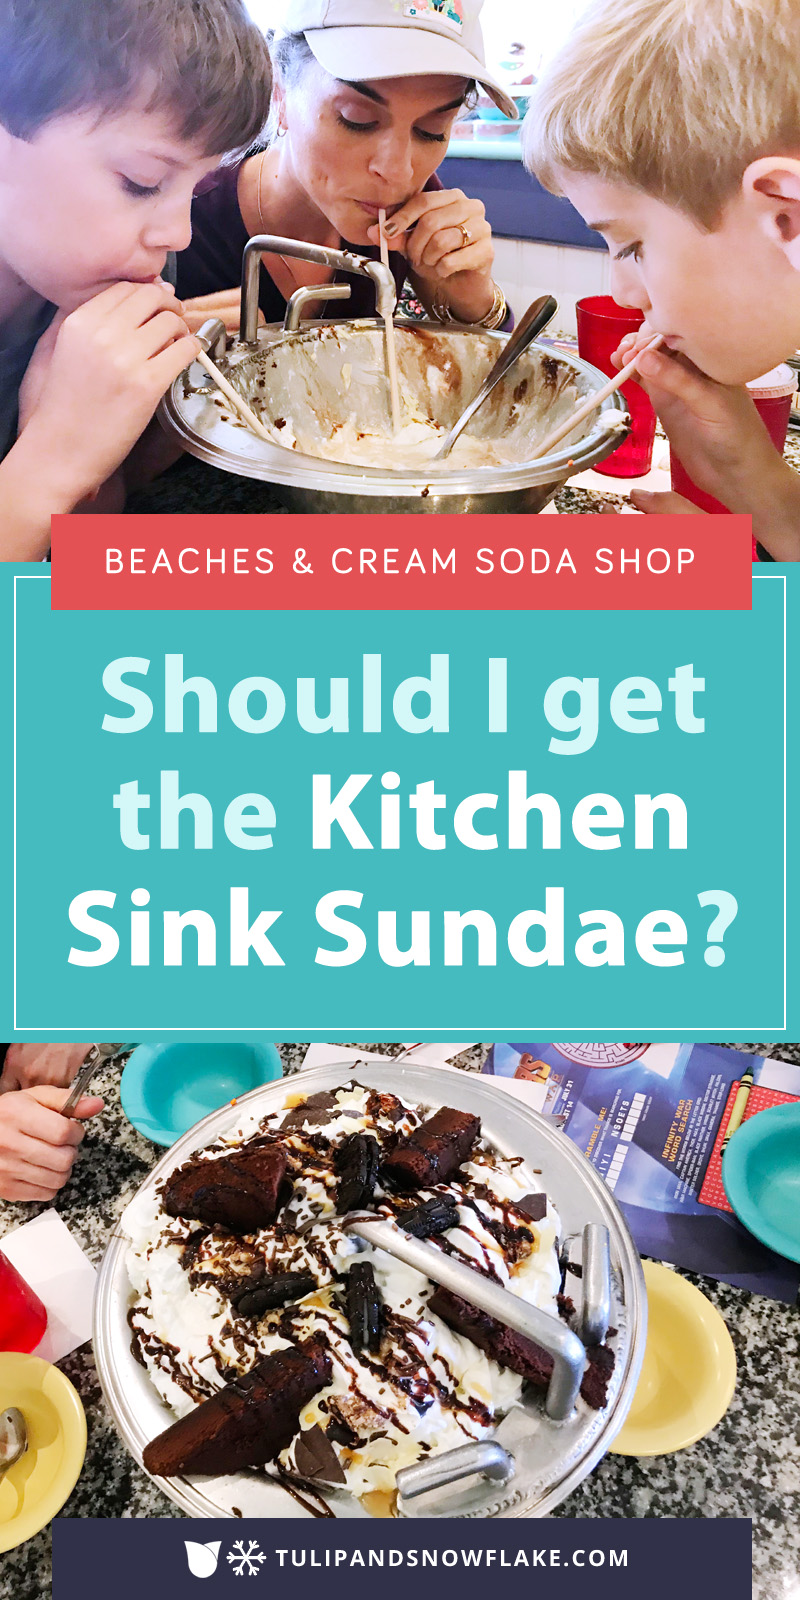 Should I Get the Kitchen Sink Sundae